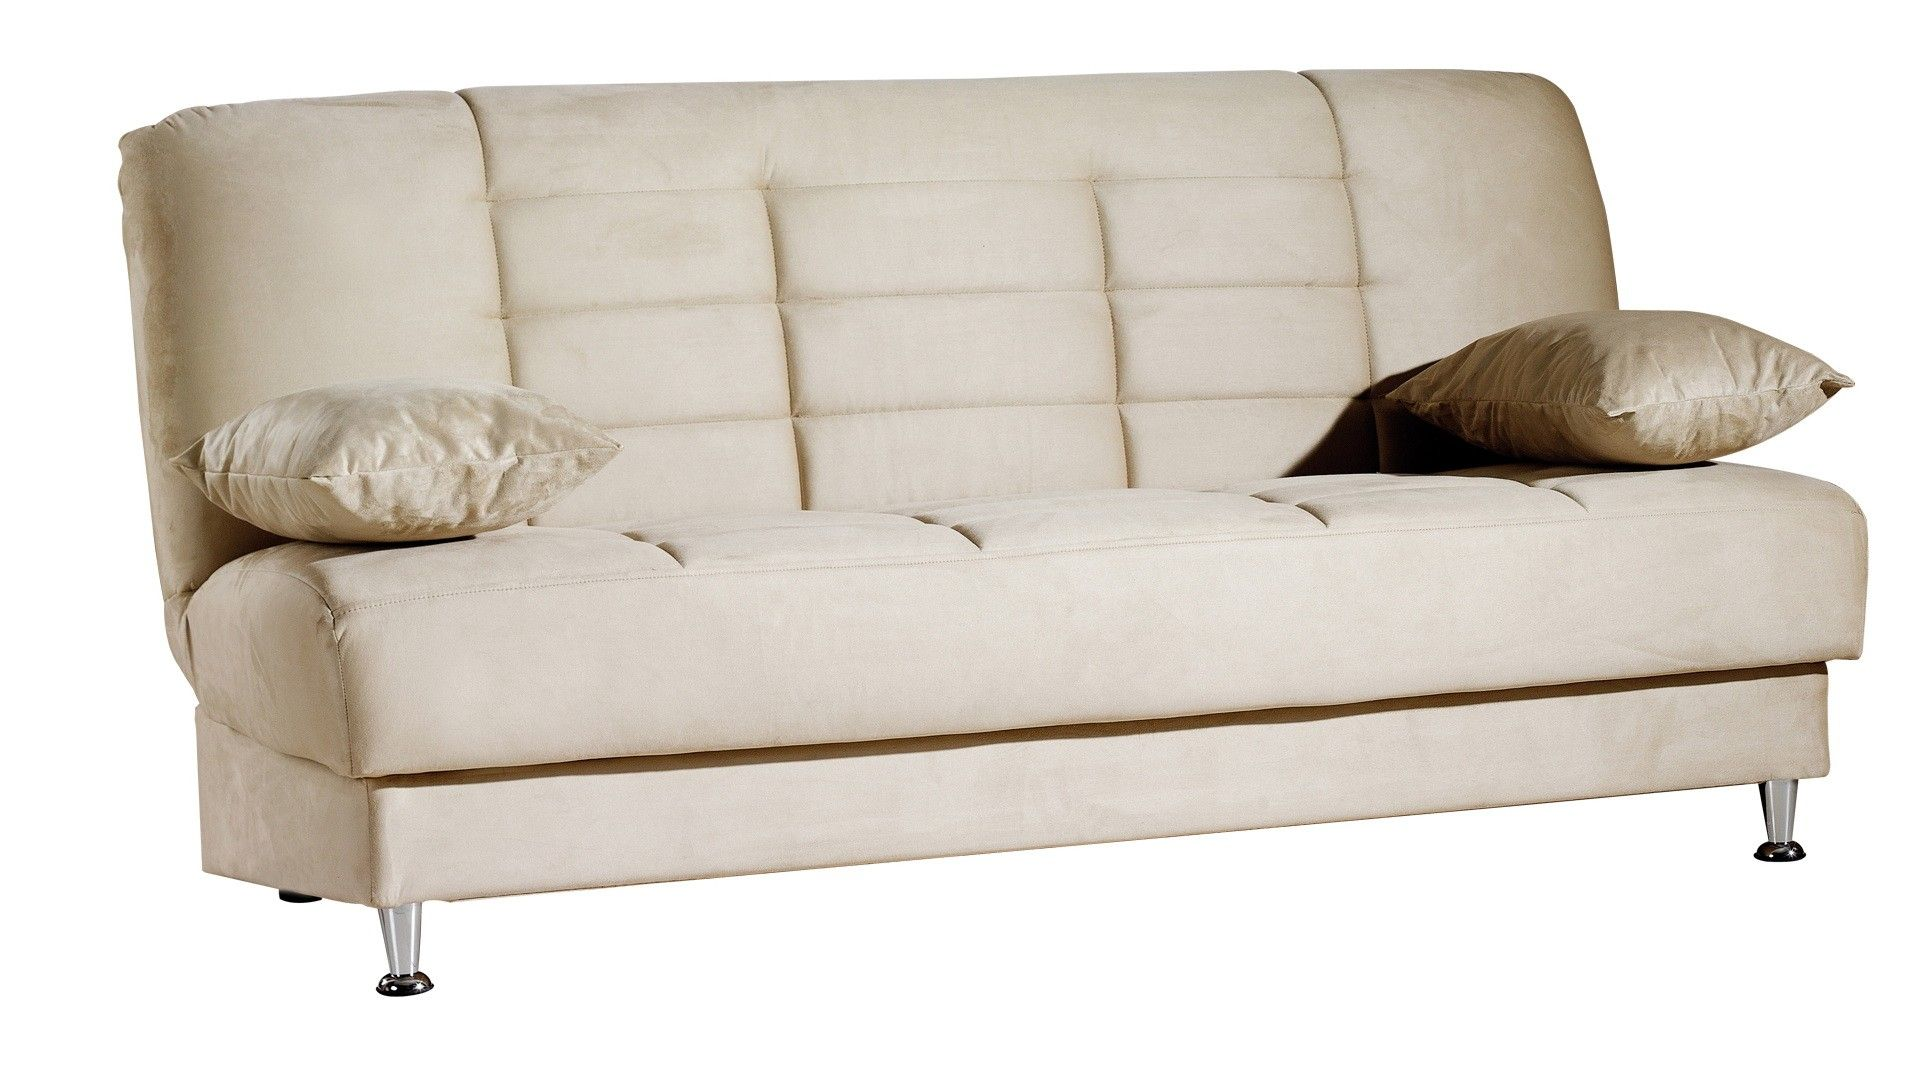 Sunset Vegas Sofa Bed Rainbow Beige